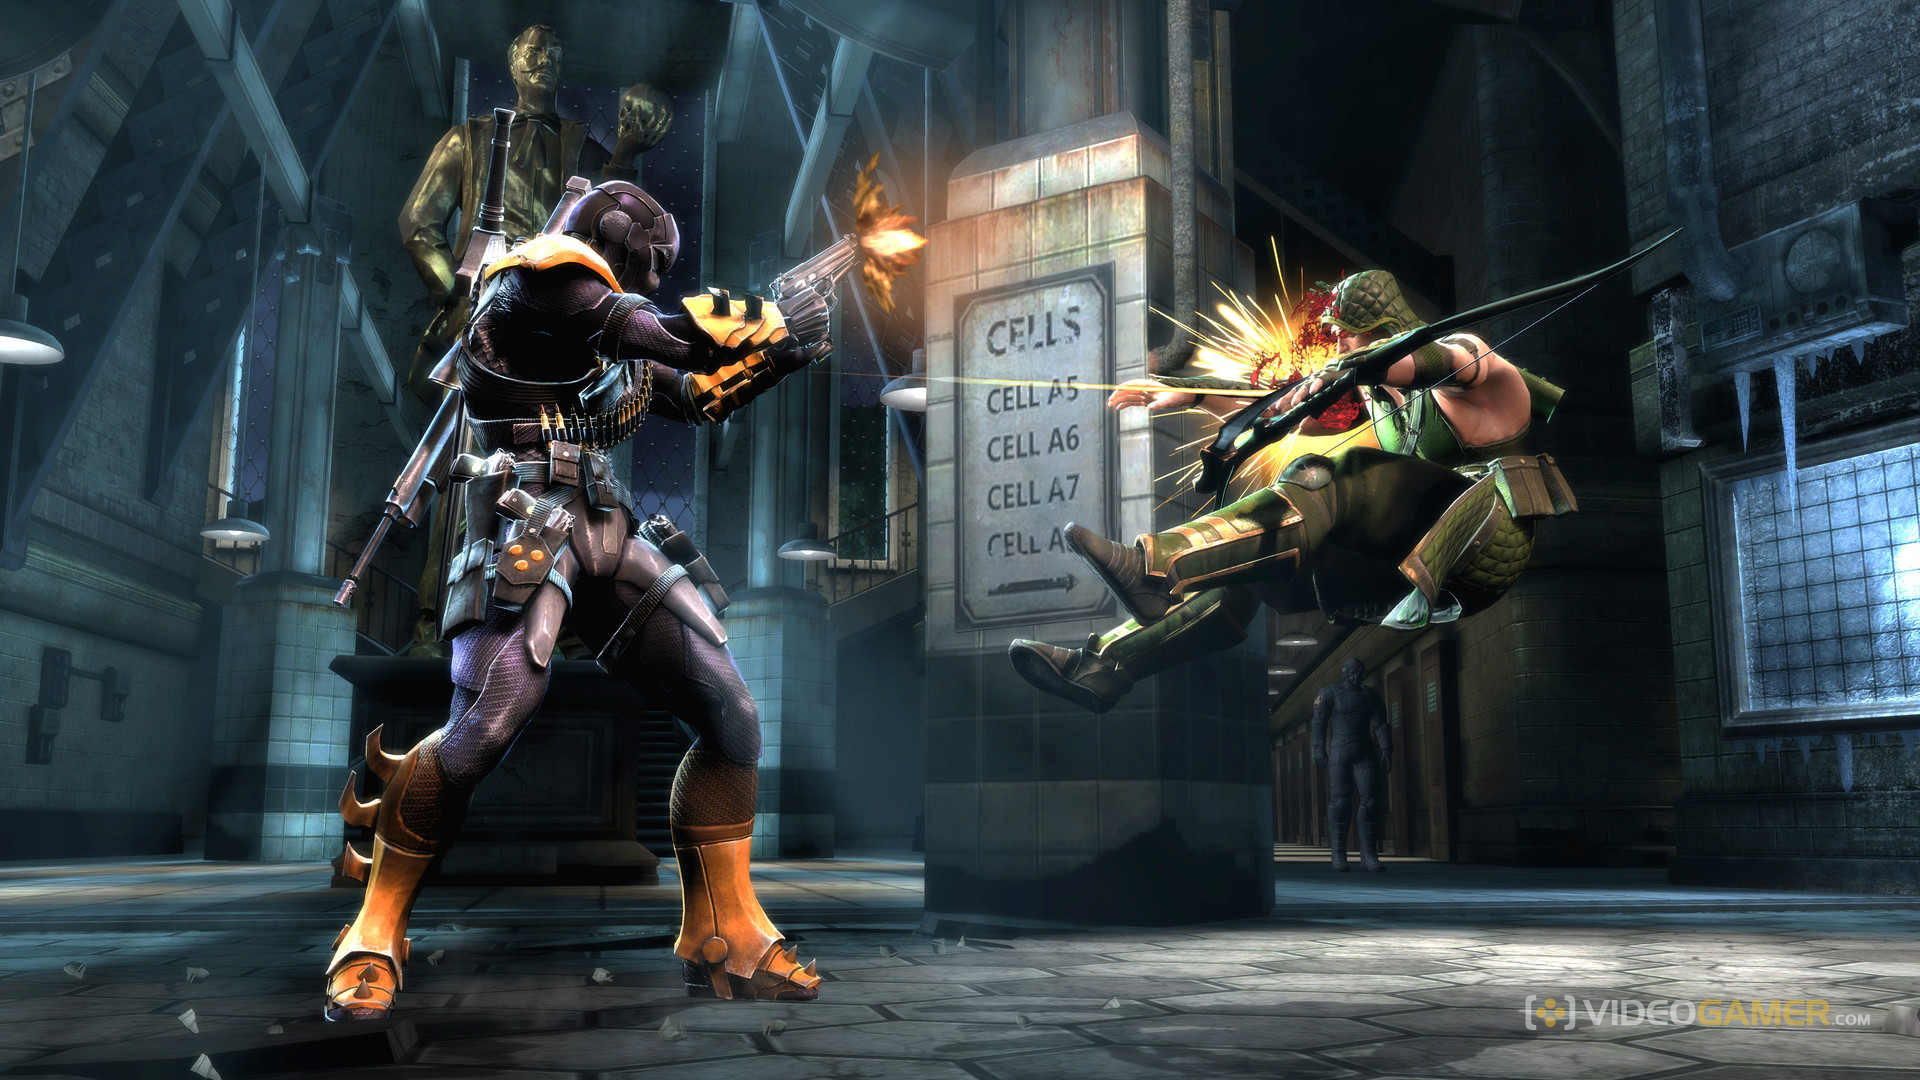 WIN! Injustice: Gods Among Us For PS3